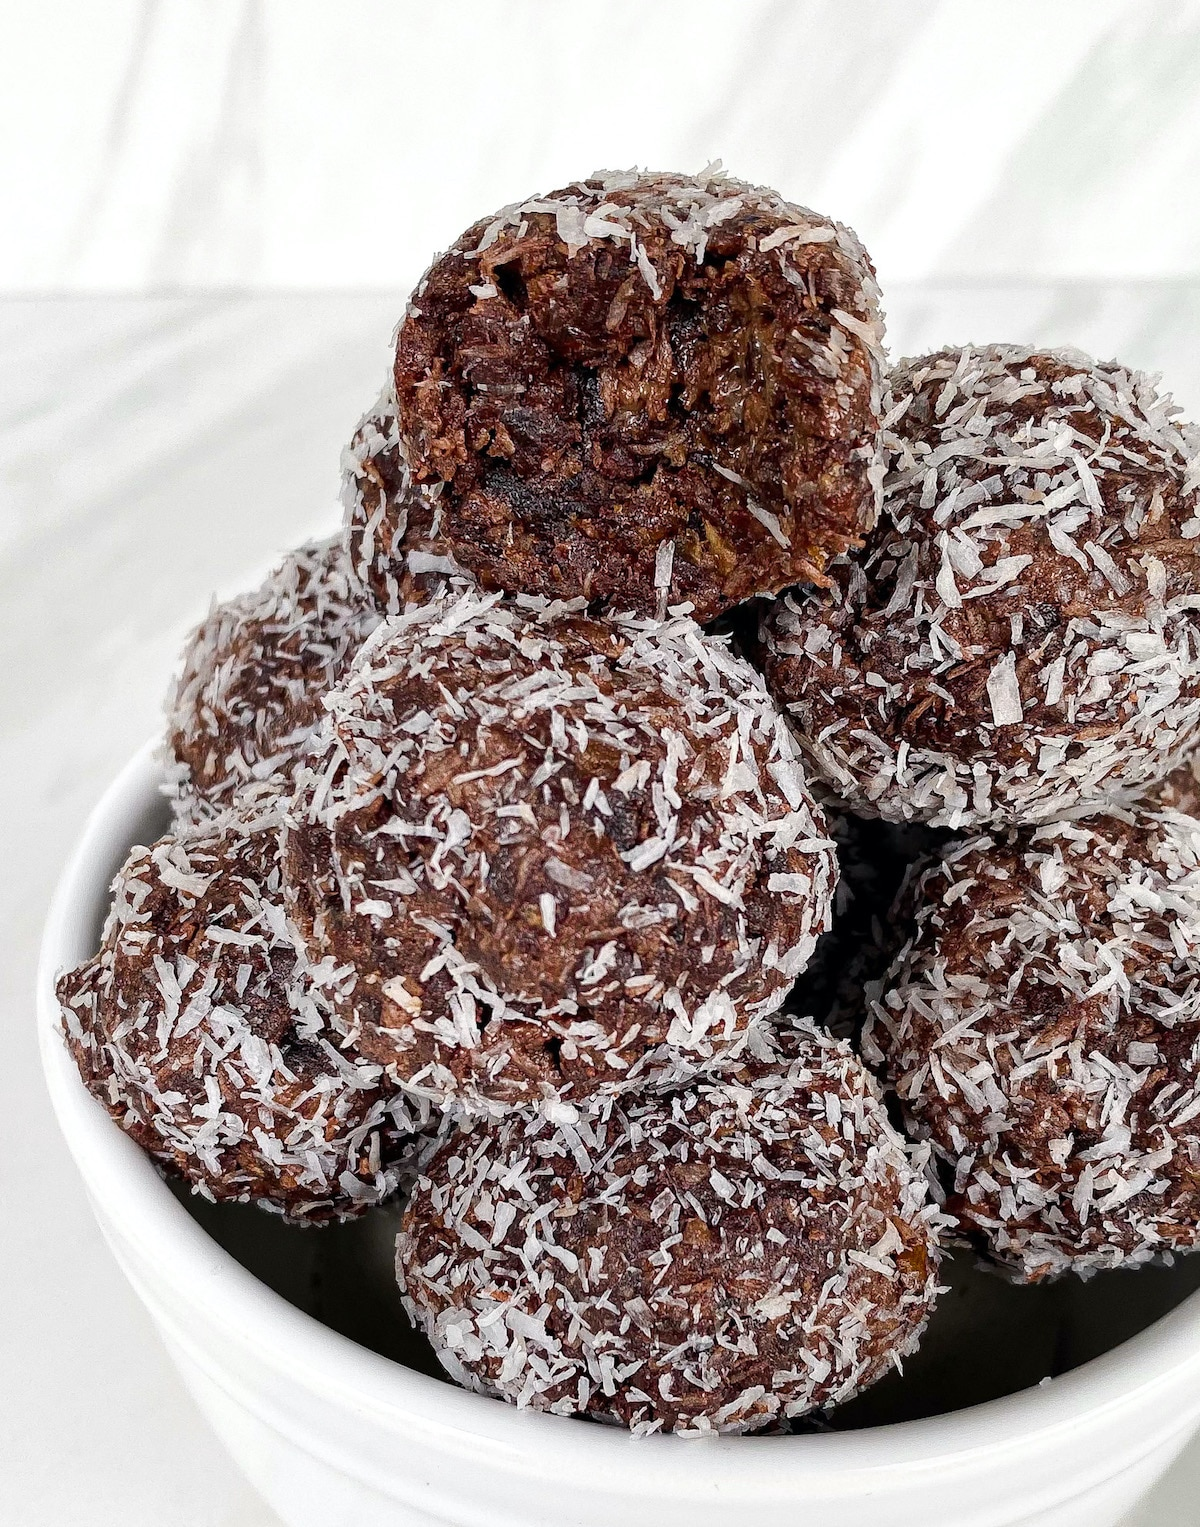 Bowl of healthy cocoa energy balls with a bite taken out